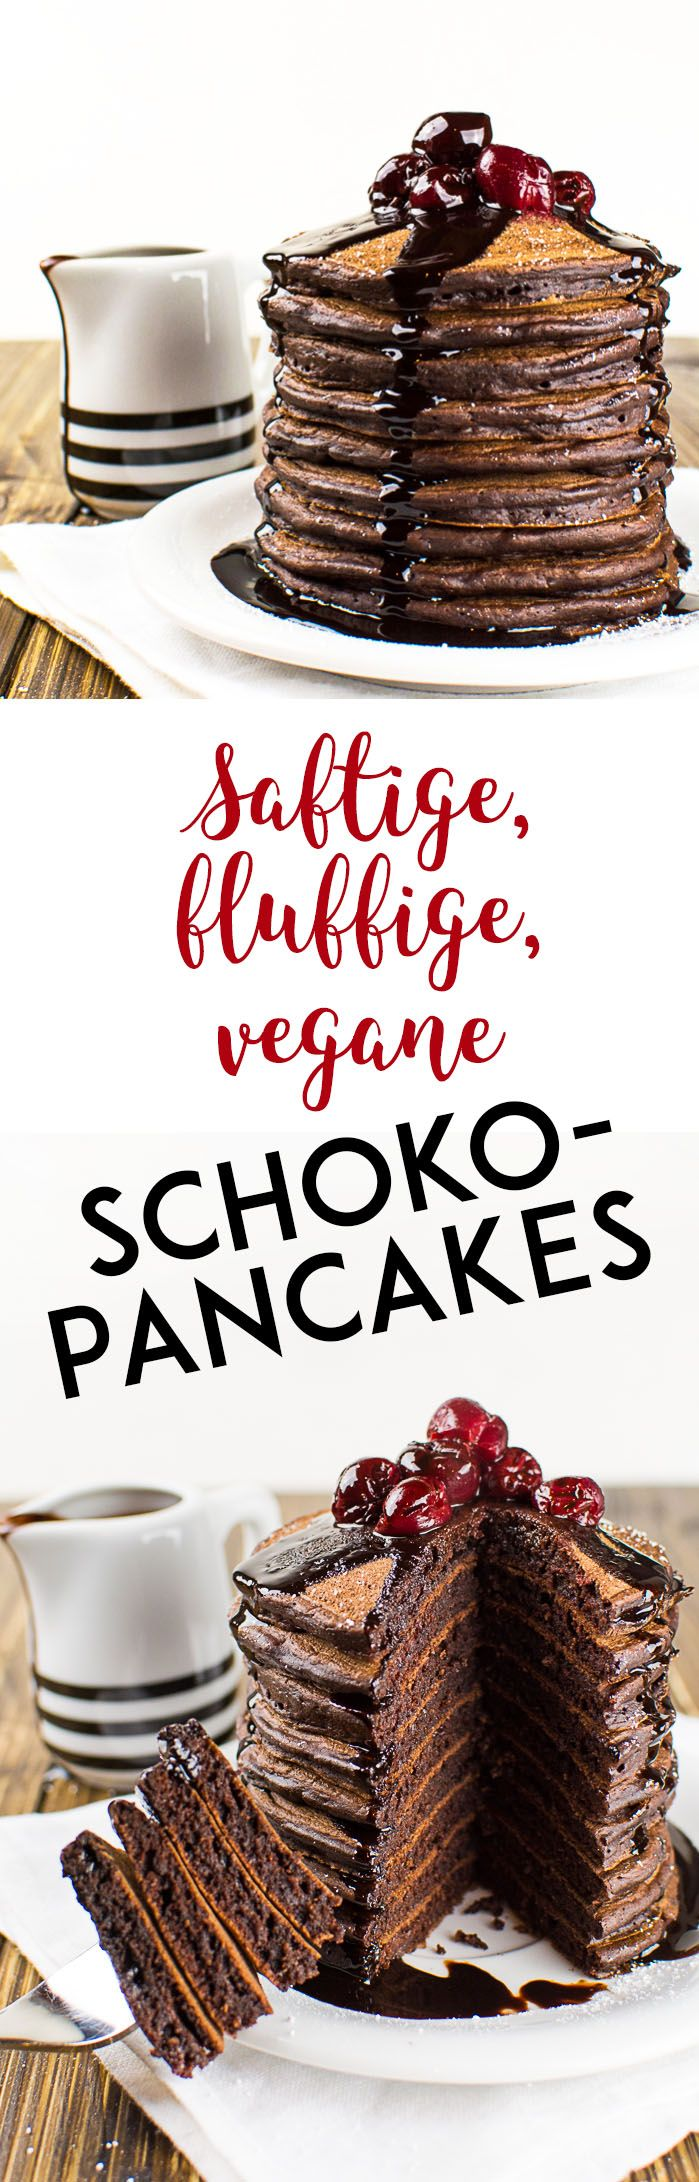 Schoko-Pancakes. Entdeckt von Vegalife Rocks:  www.vegaliferocks.de✨ I Fleischlos glücklich, fit & Gesund✨ I Follow me for more inspiration  @vegaliferocks